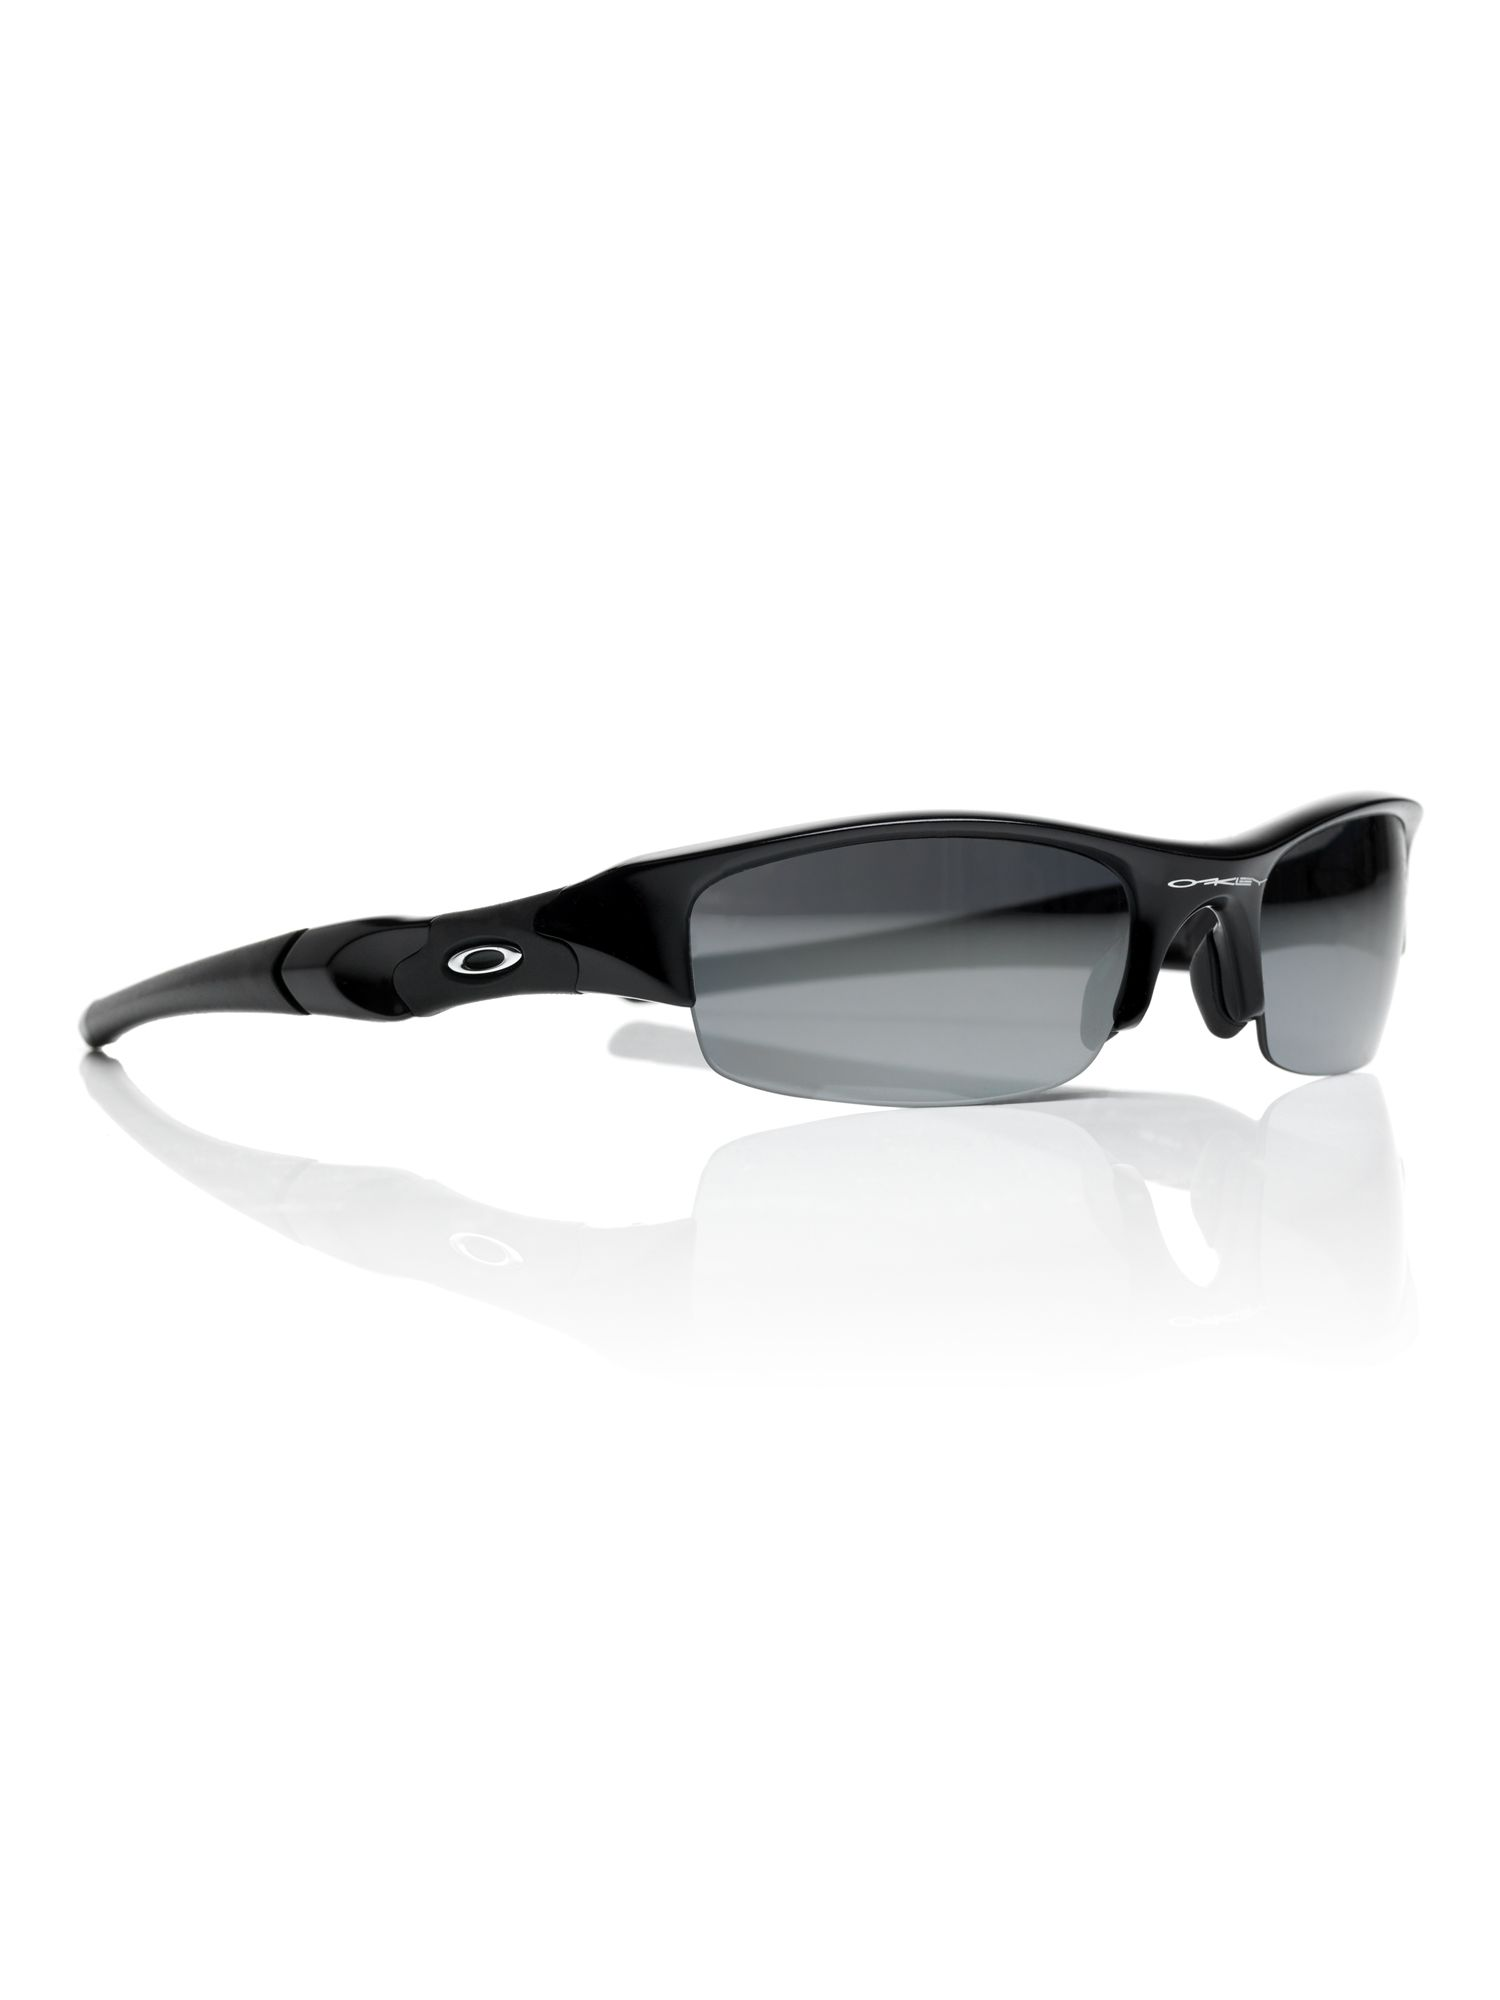 Unisex Flak Jacket Sunglasses